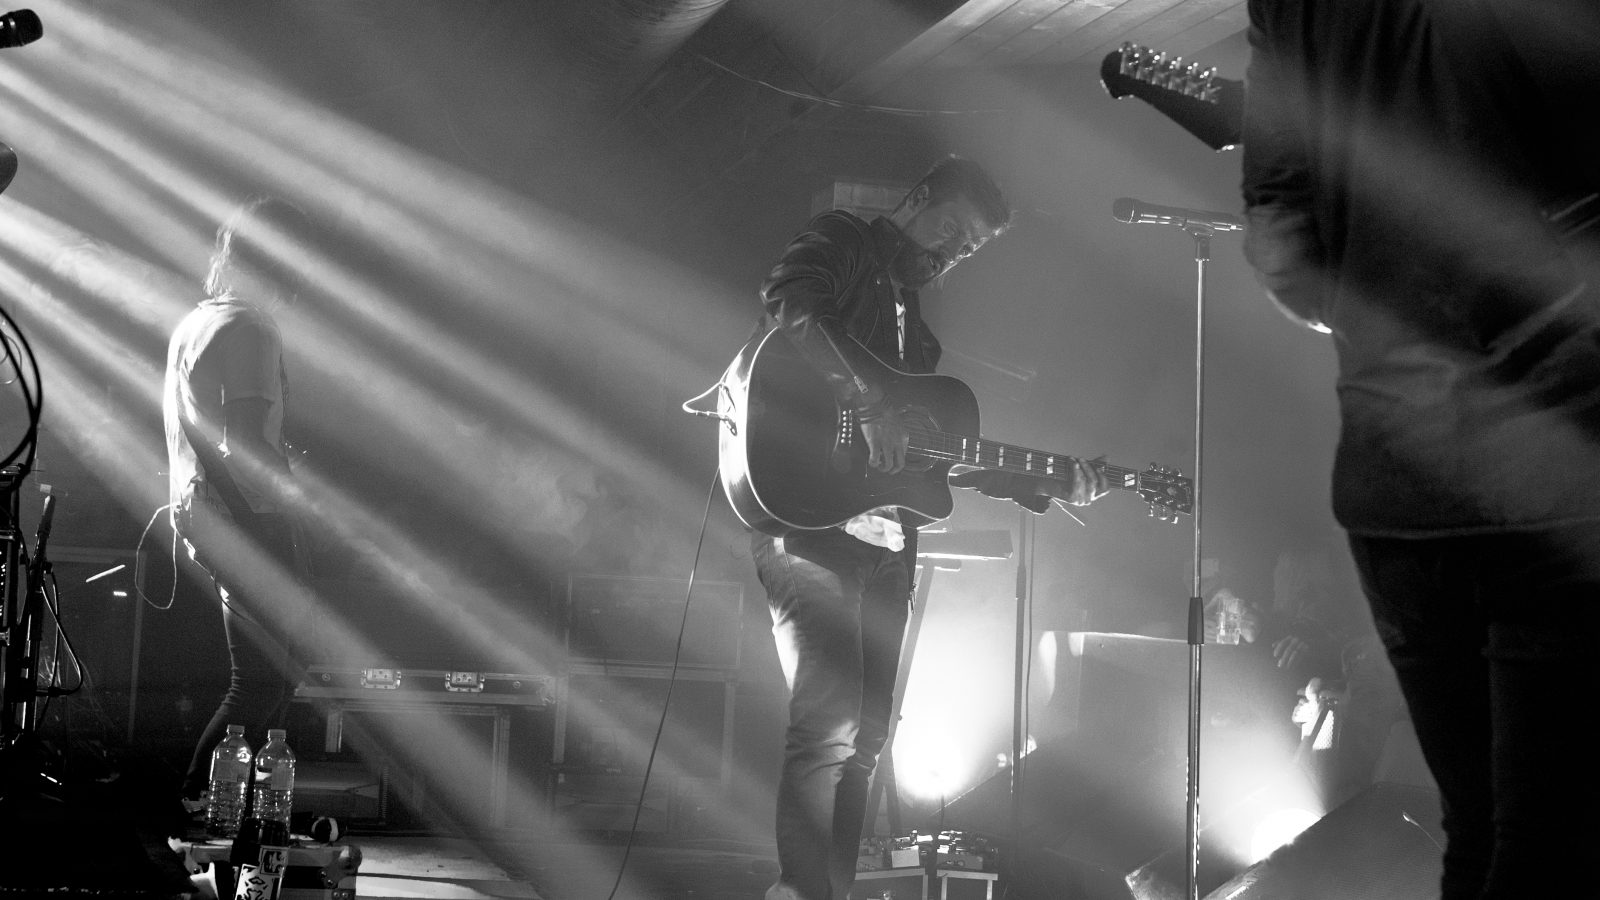 grayscale photography of band member performing on stage